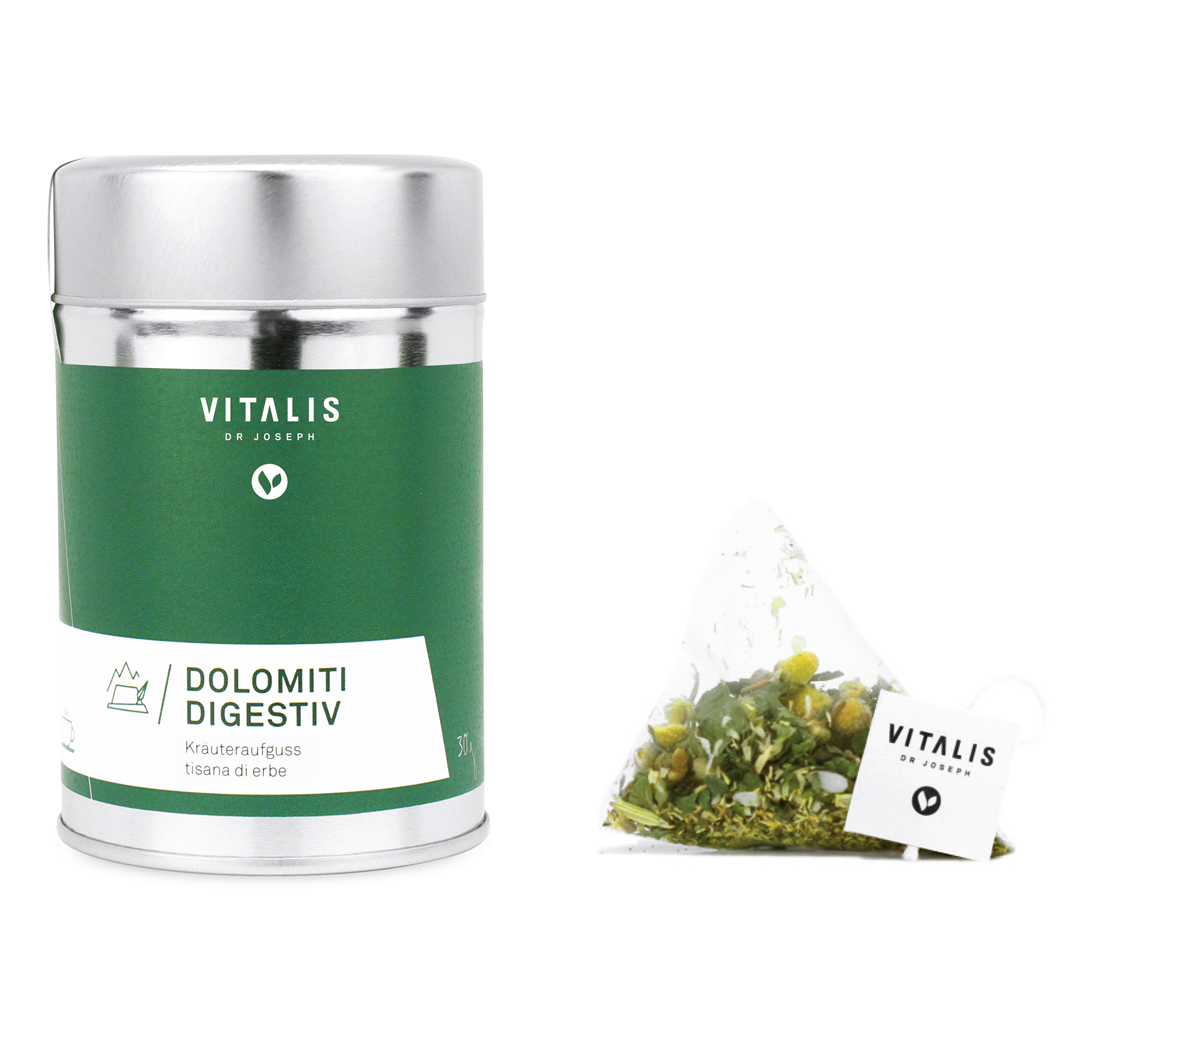 DOLOMITI DIGESTIV herbal tea, 30g